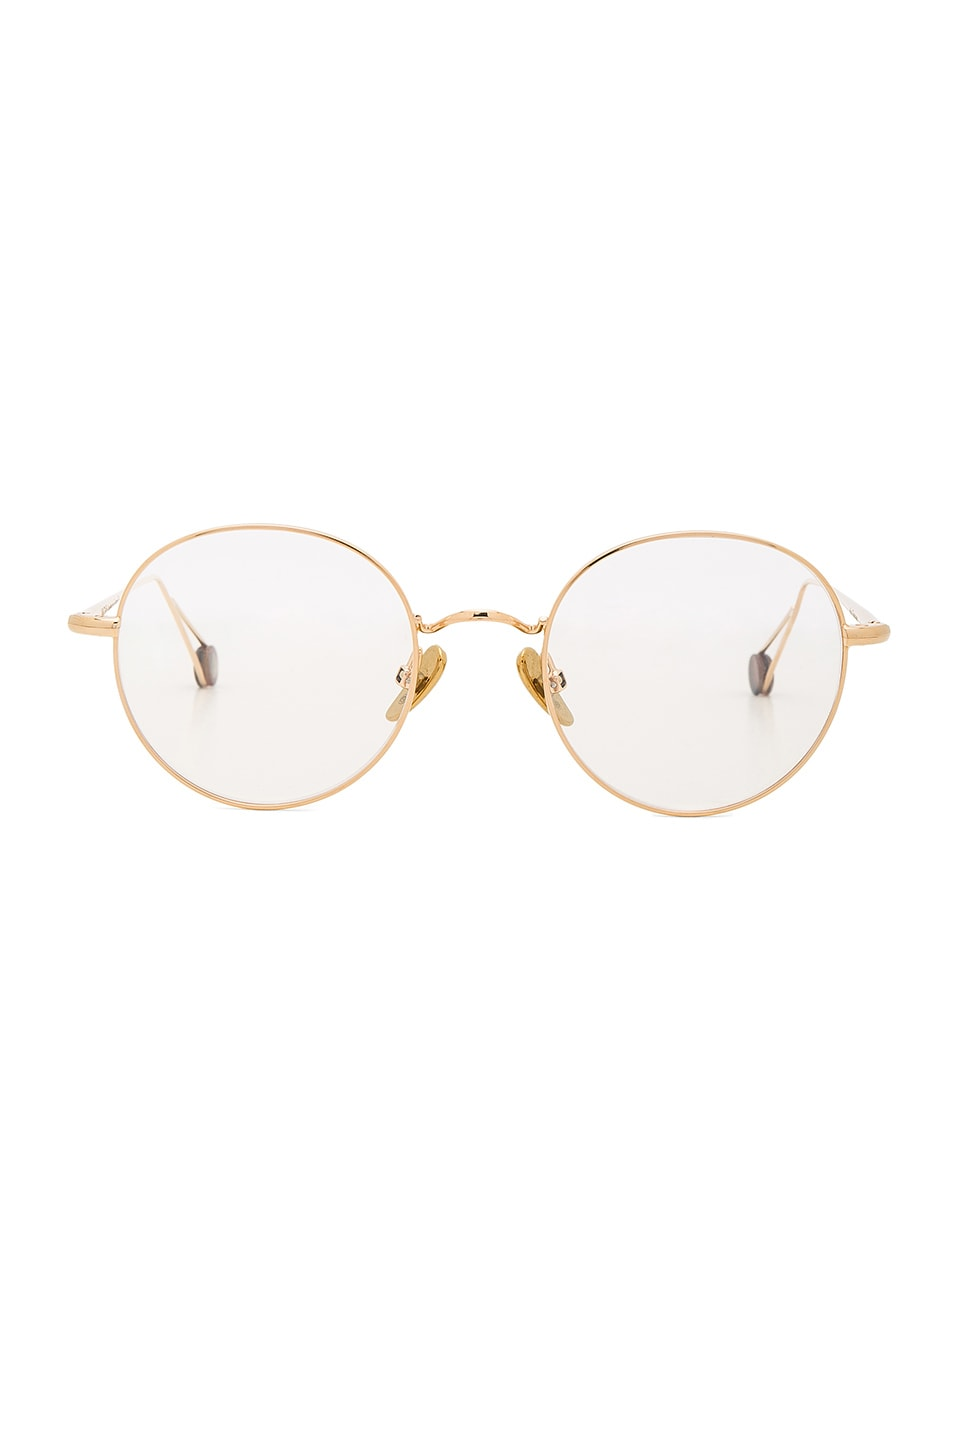 Ahlem Lena Opticals in Champagne